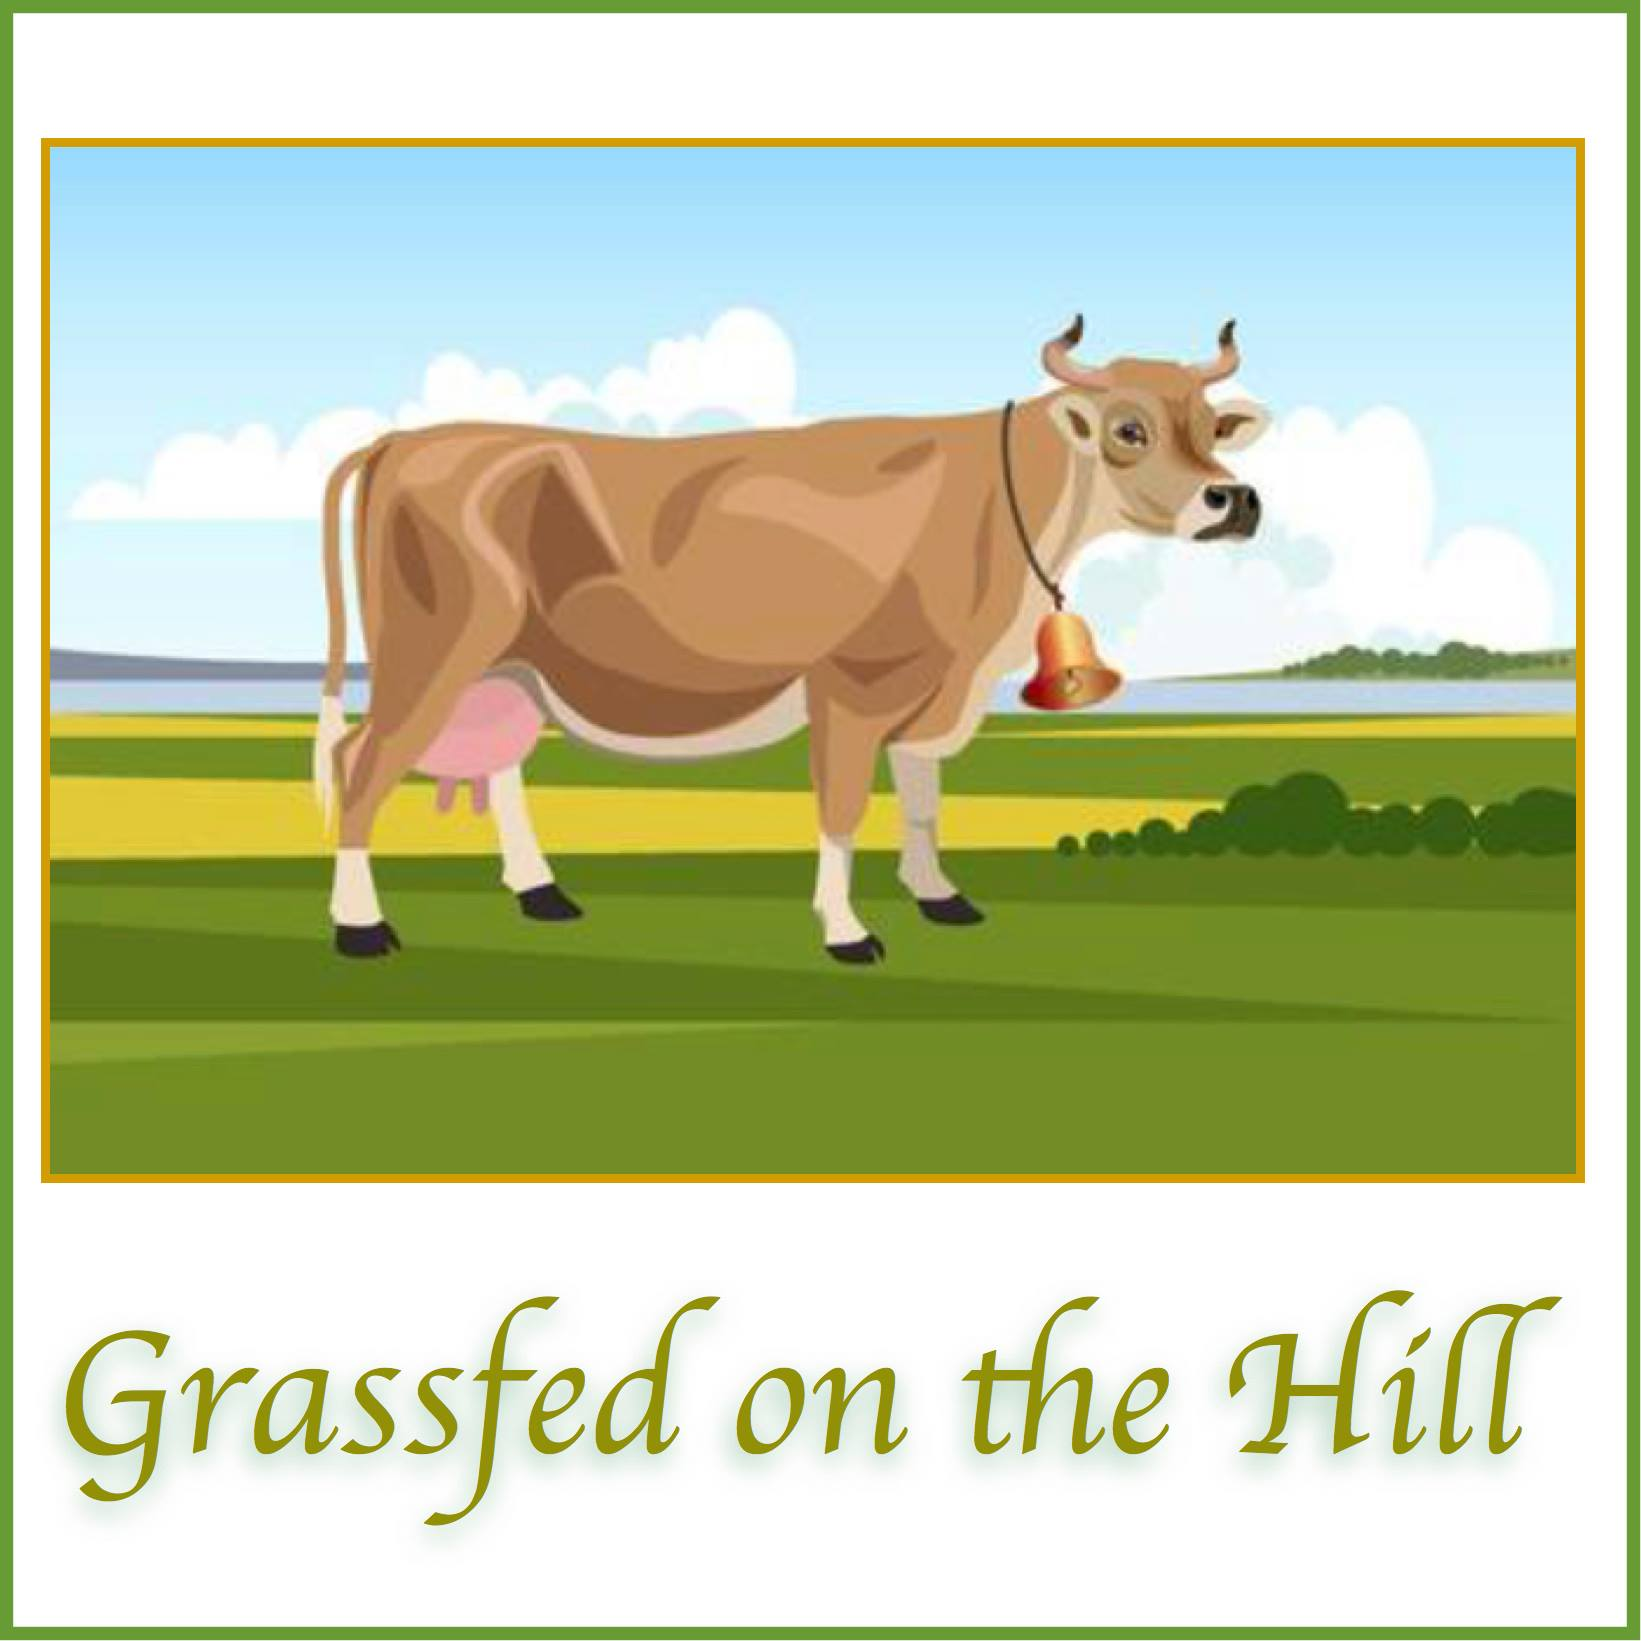 Grassfed on the Hill